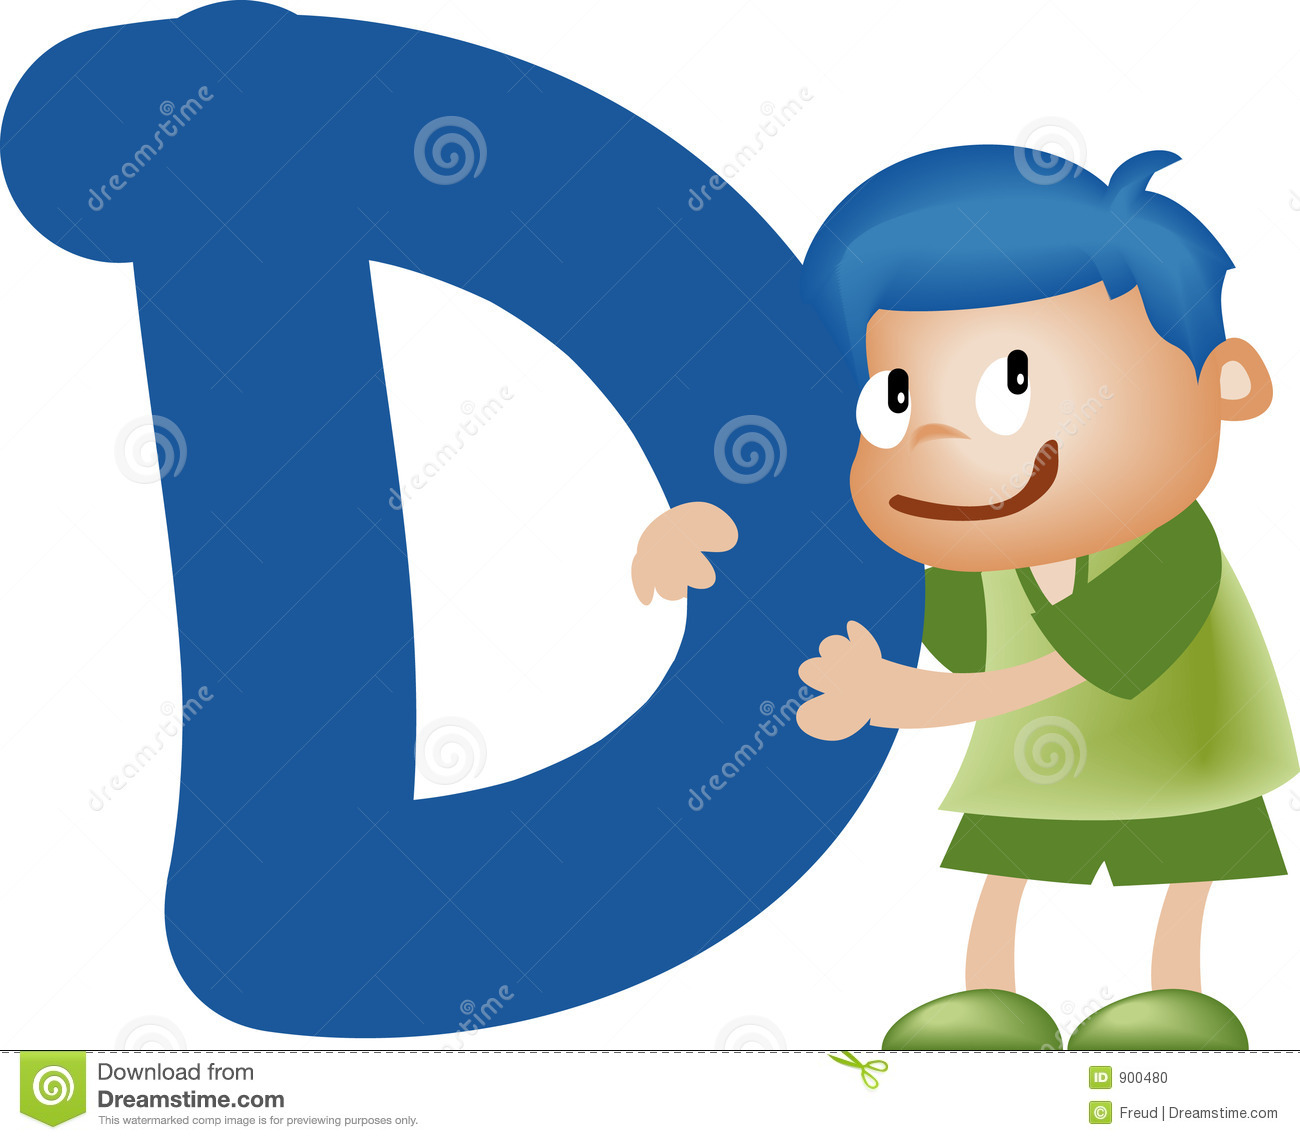 Alphabet letter d clipart graphic download Alphabet letter d clipart - ClipartFox graphic download